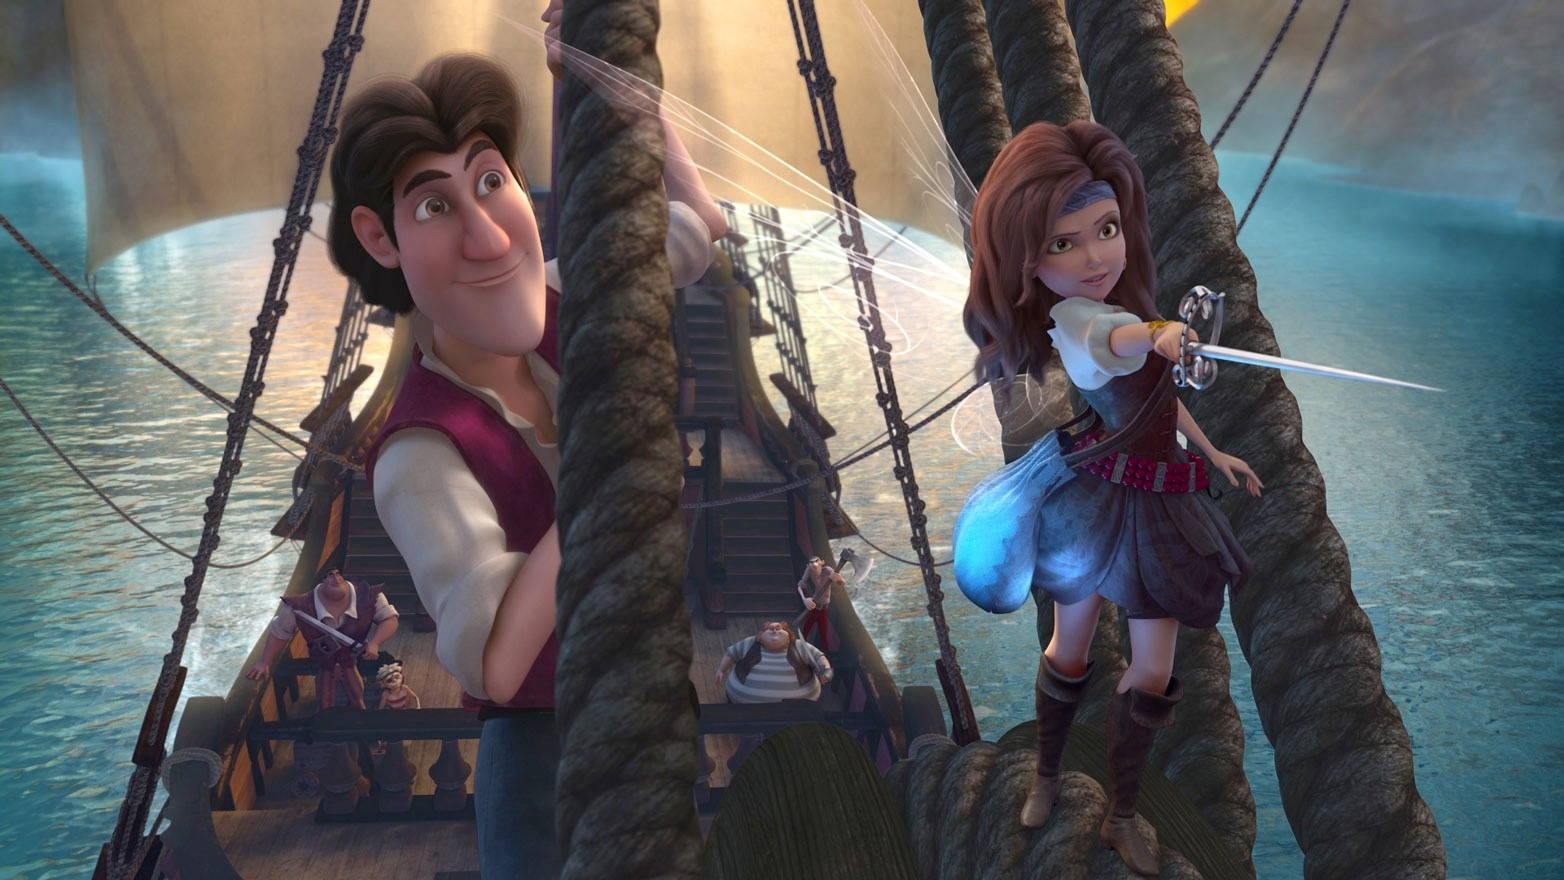 Captain James Hook and Zarina from Walt Disney Pictures' The Pirate Fairy (2014)